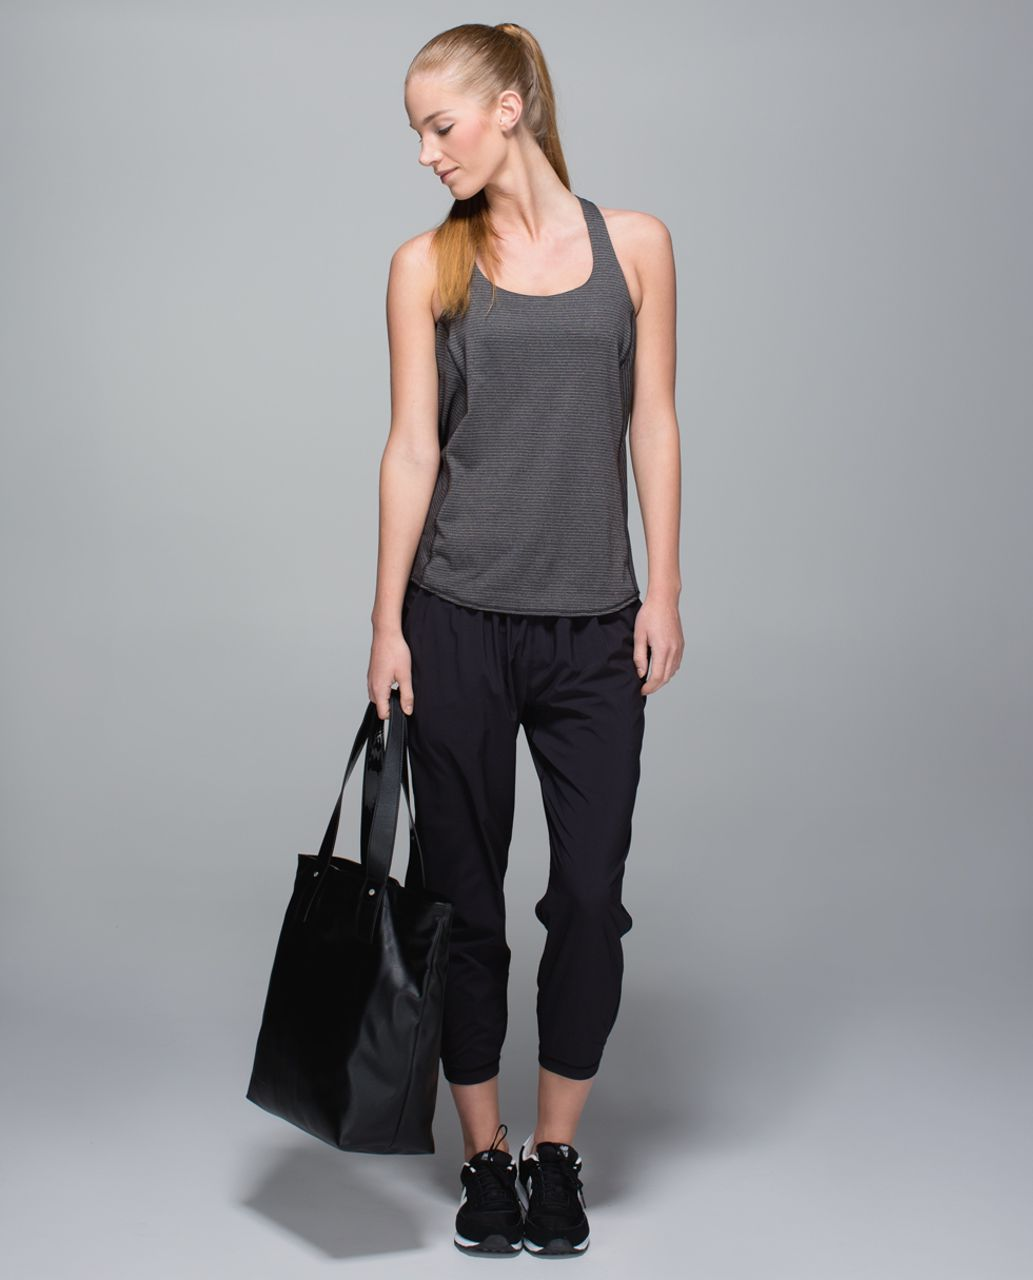 Lululemon Wild Tank - Heathered Black / Desert Snake Deep Coal Black